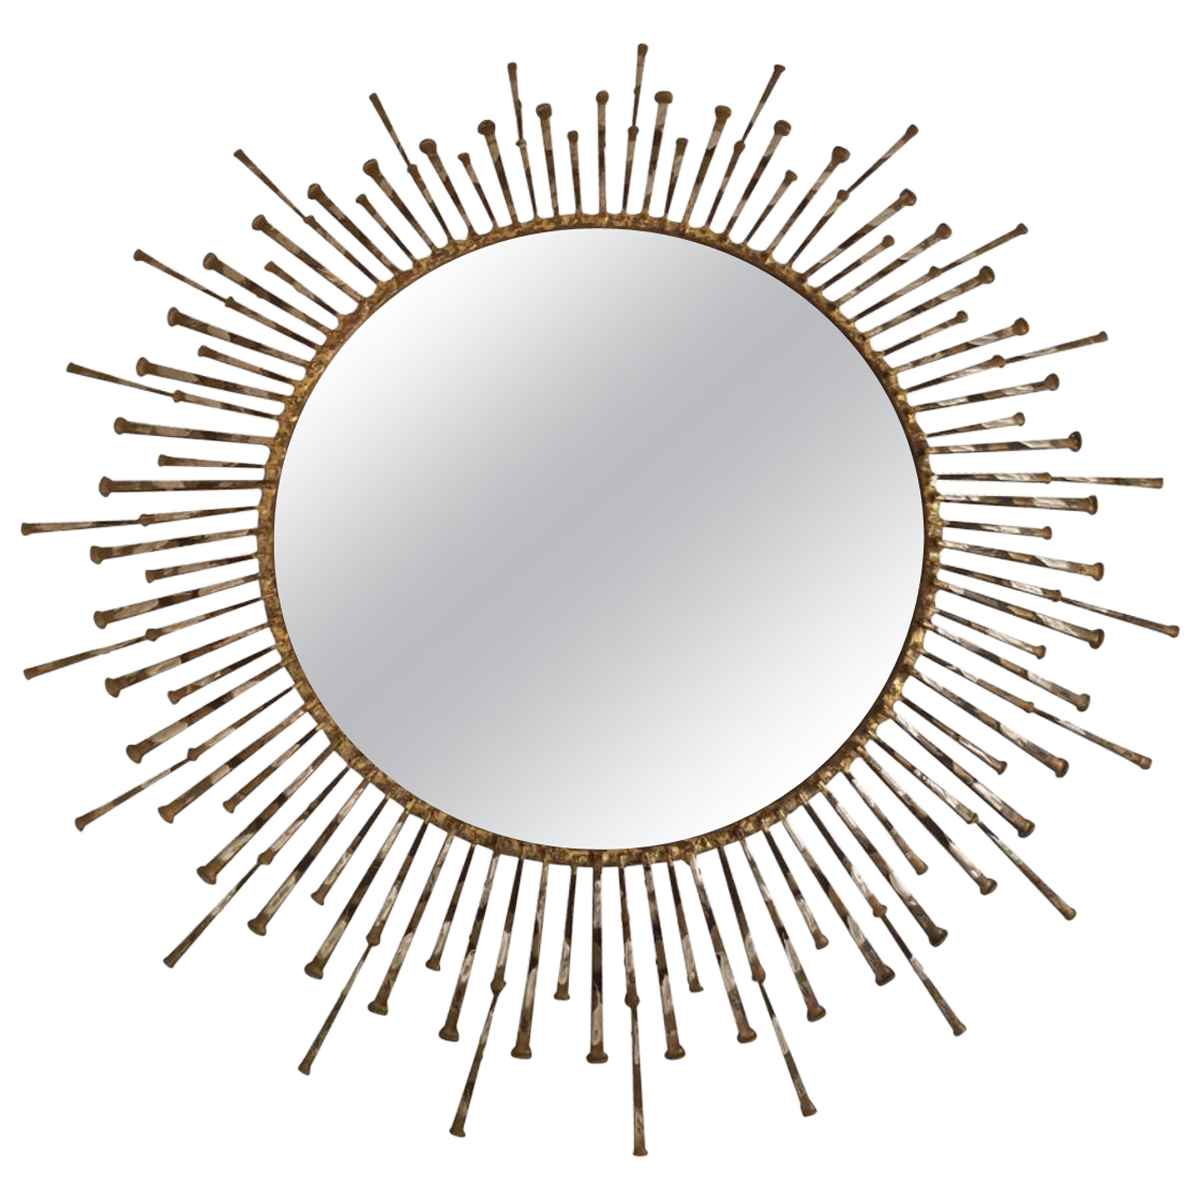 Spike and sunburst png. Mirror